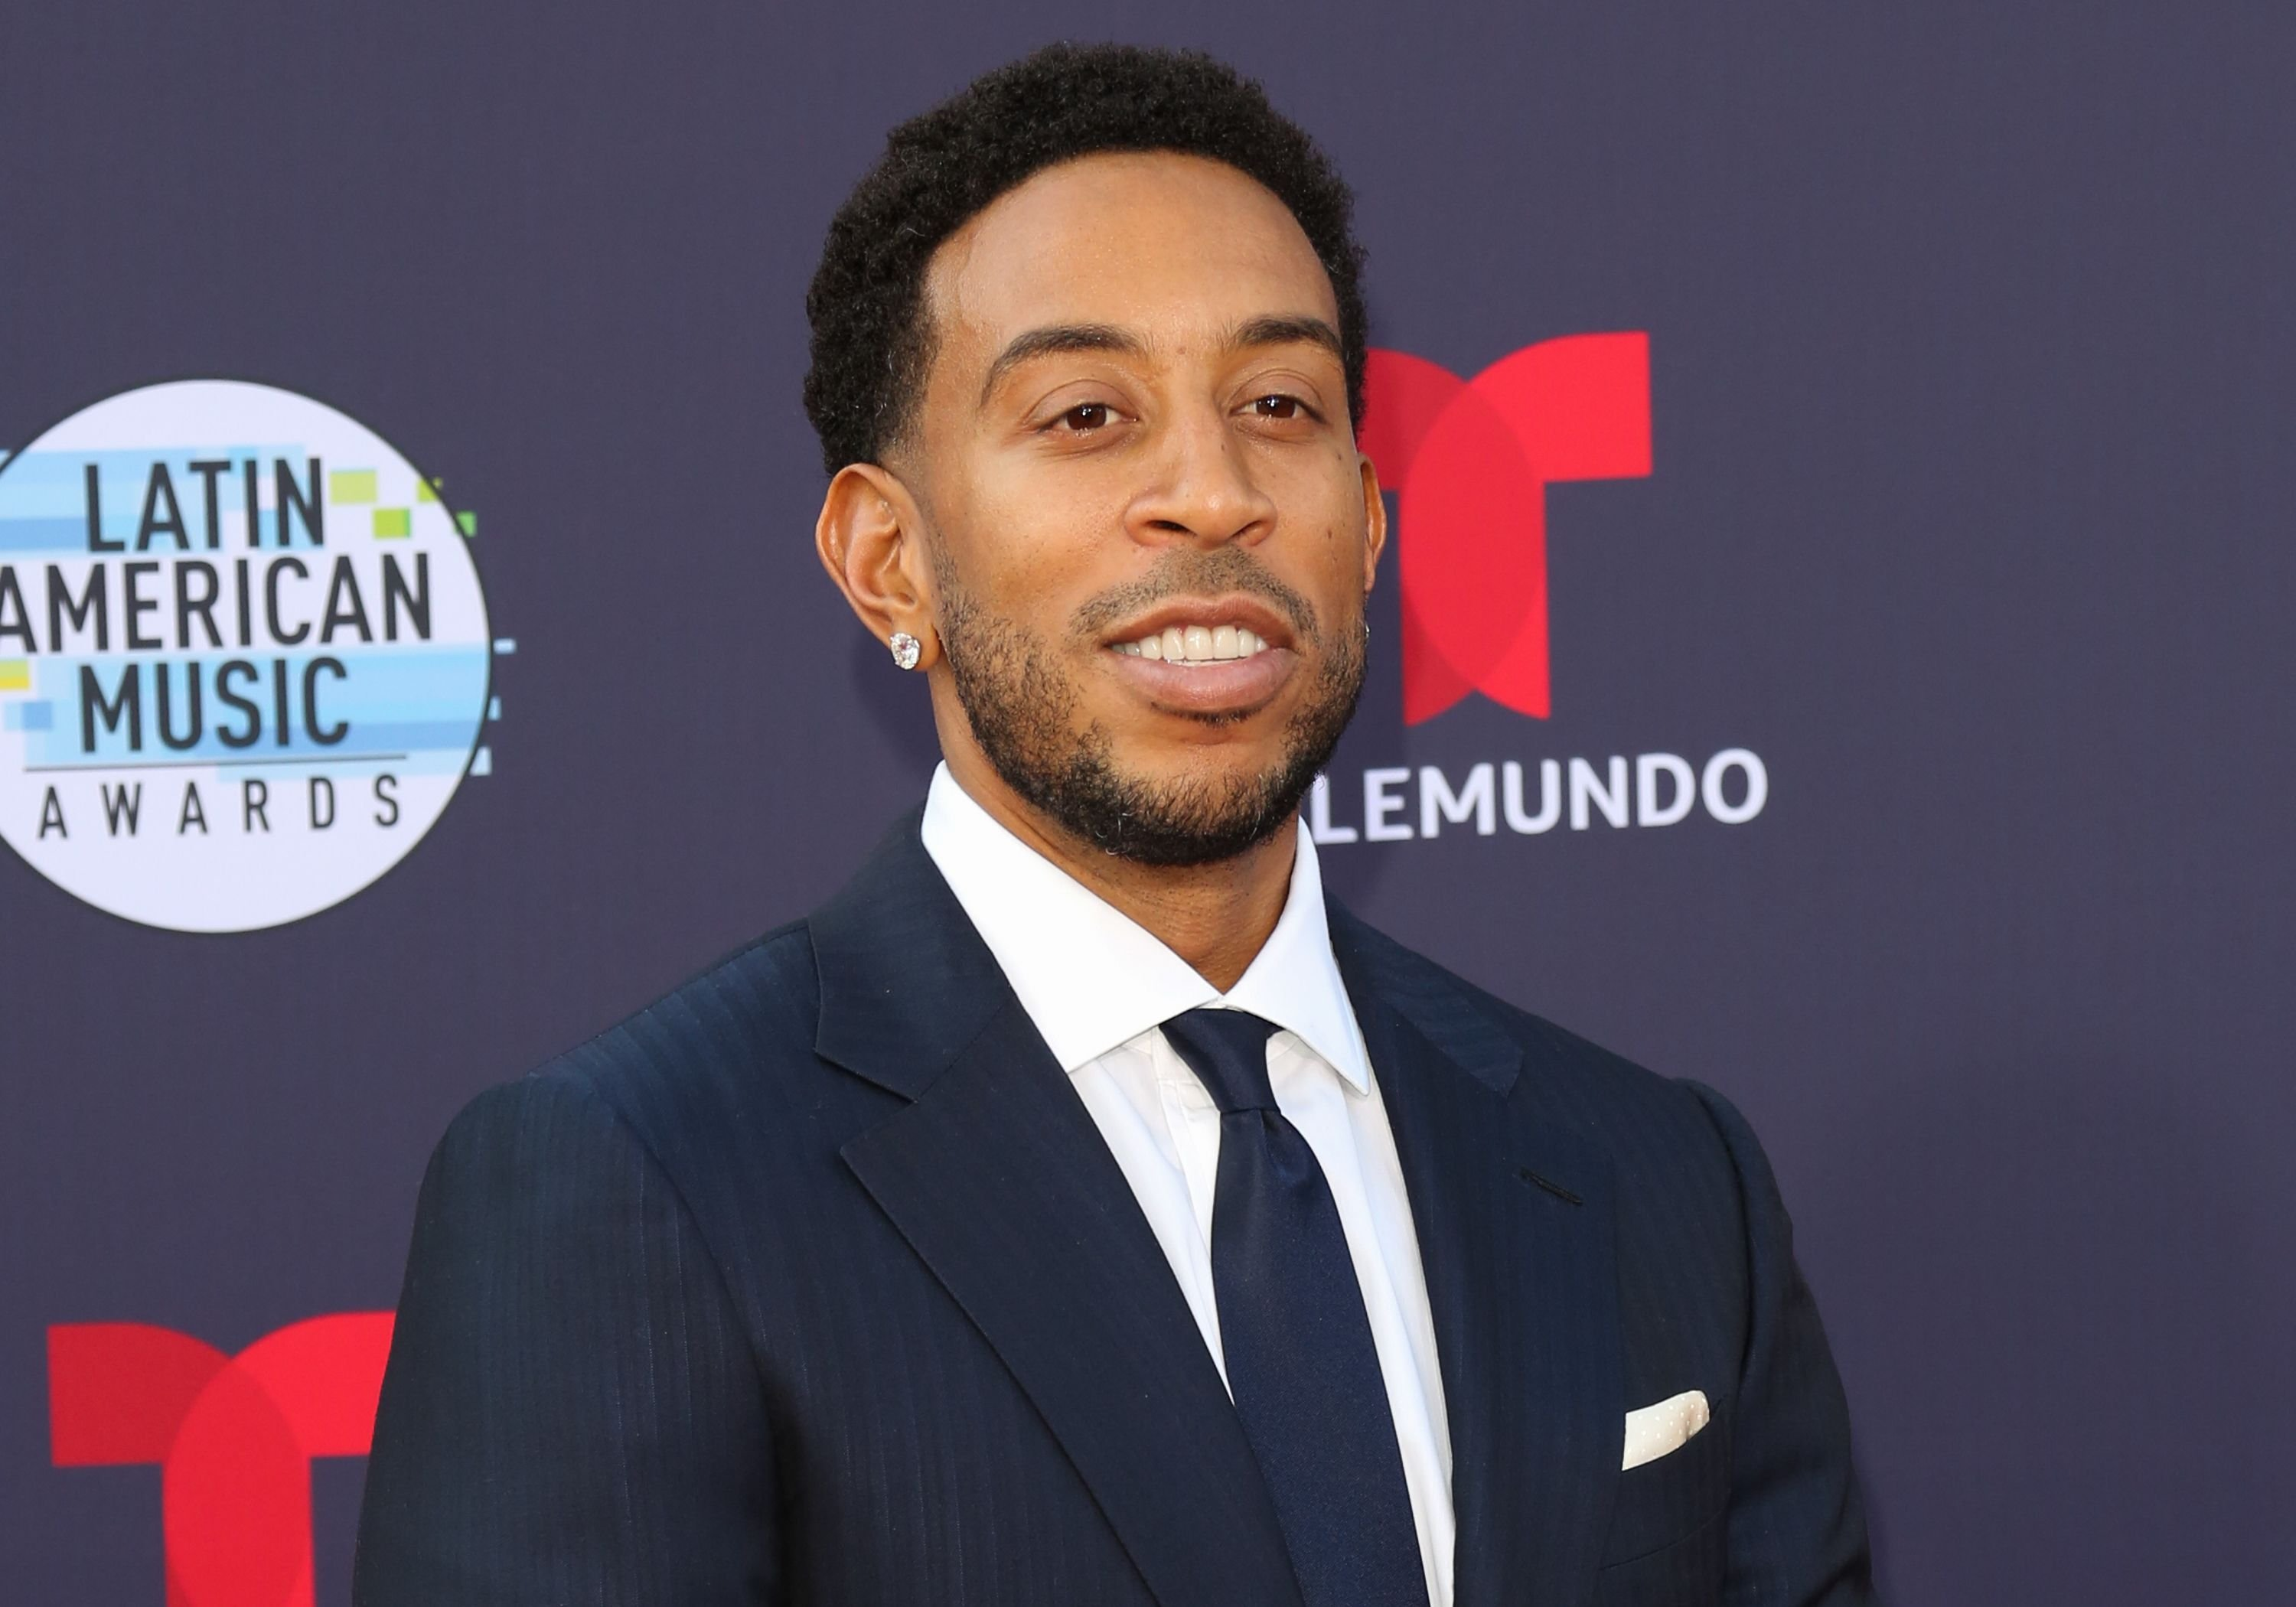 Ludacris at the the 2018 Latin American Music Awards at Dolby Theatre on October 25, 2018 in Hollywood, California. | Source: Getty Images